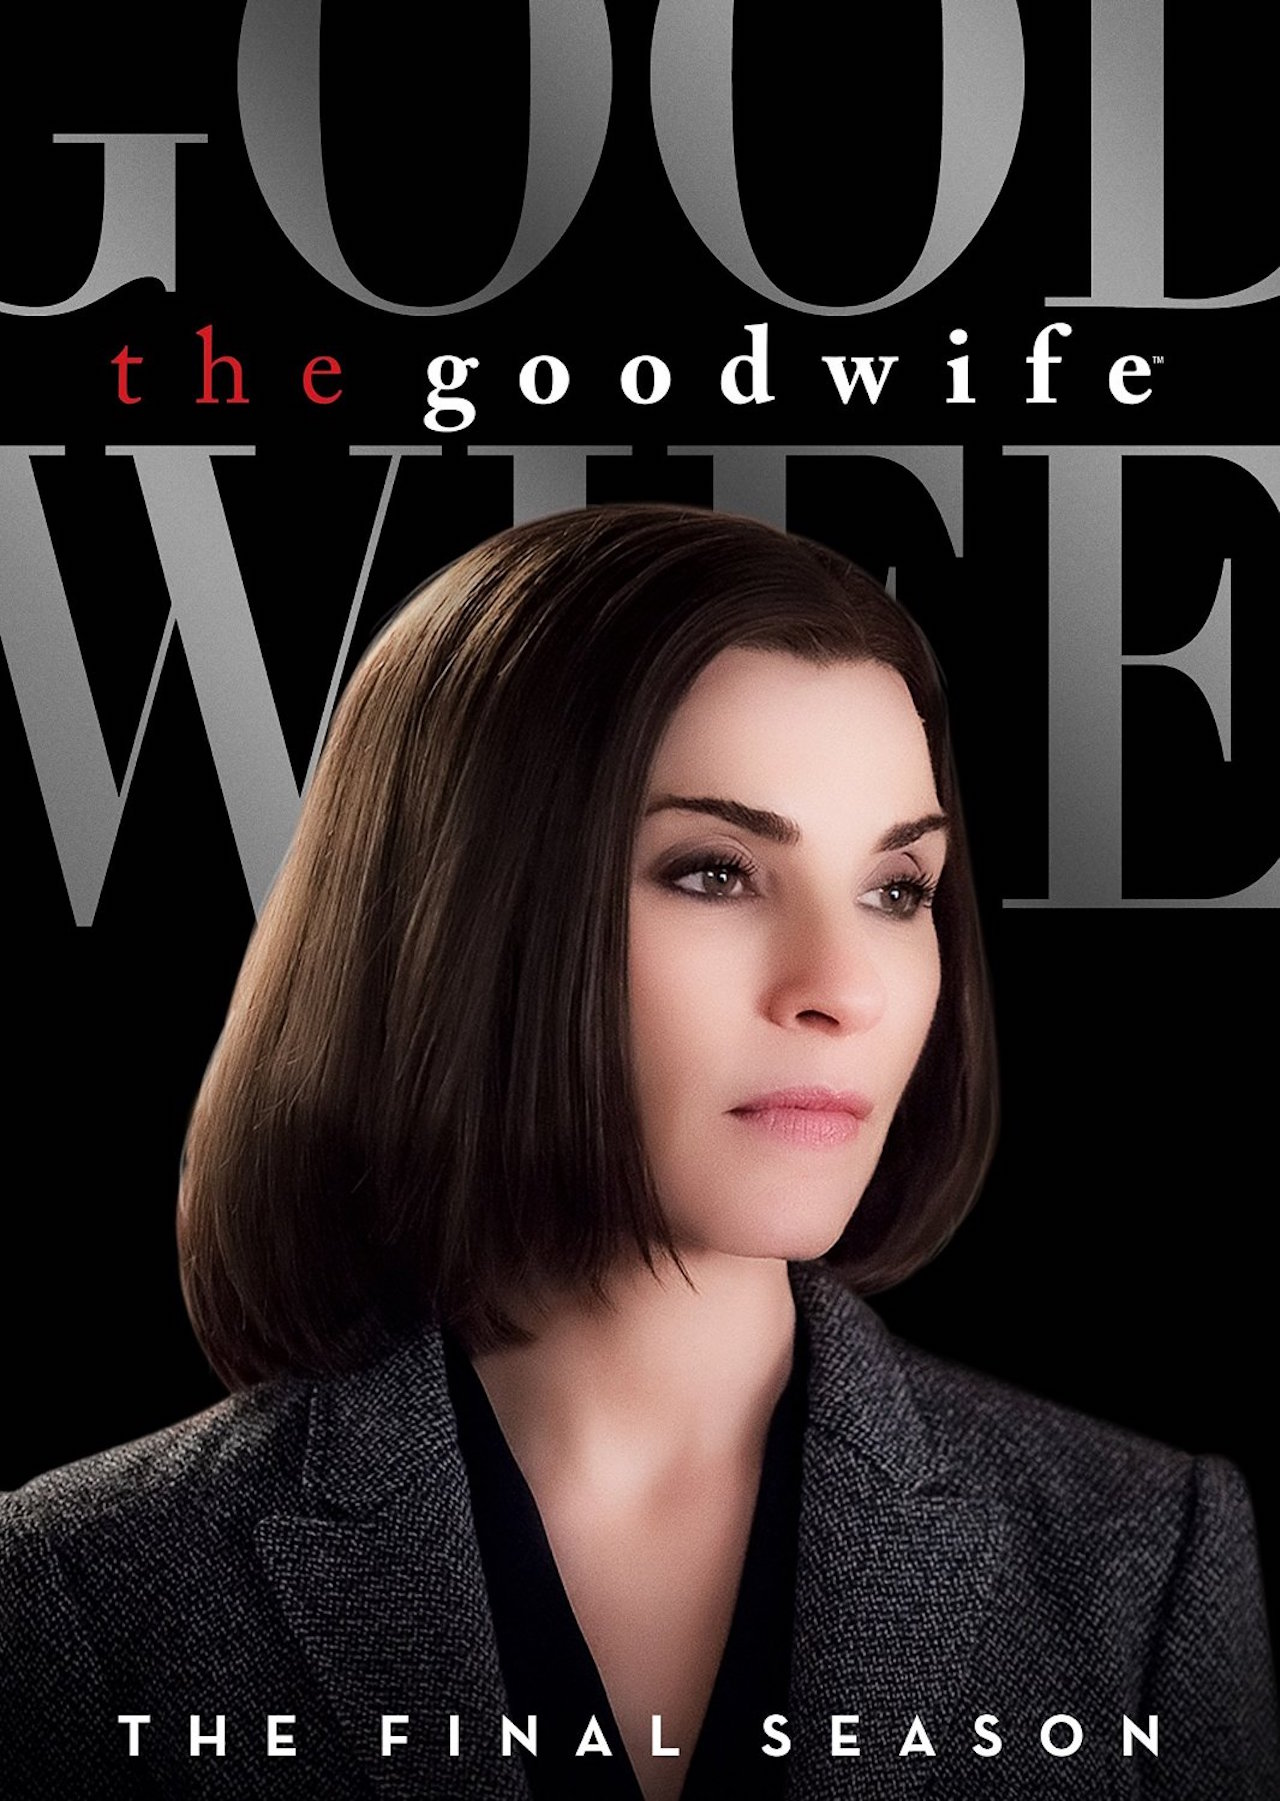 The Good Wife - The Seventh and Final Season